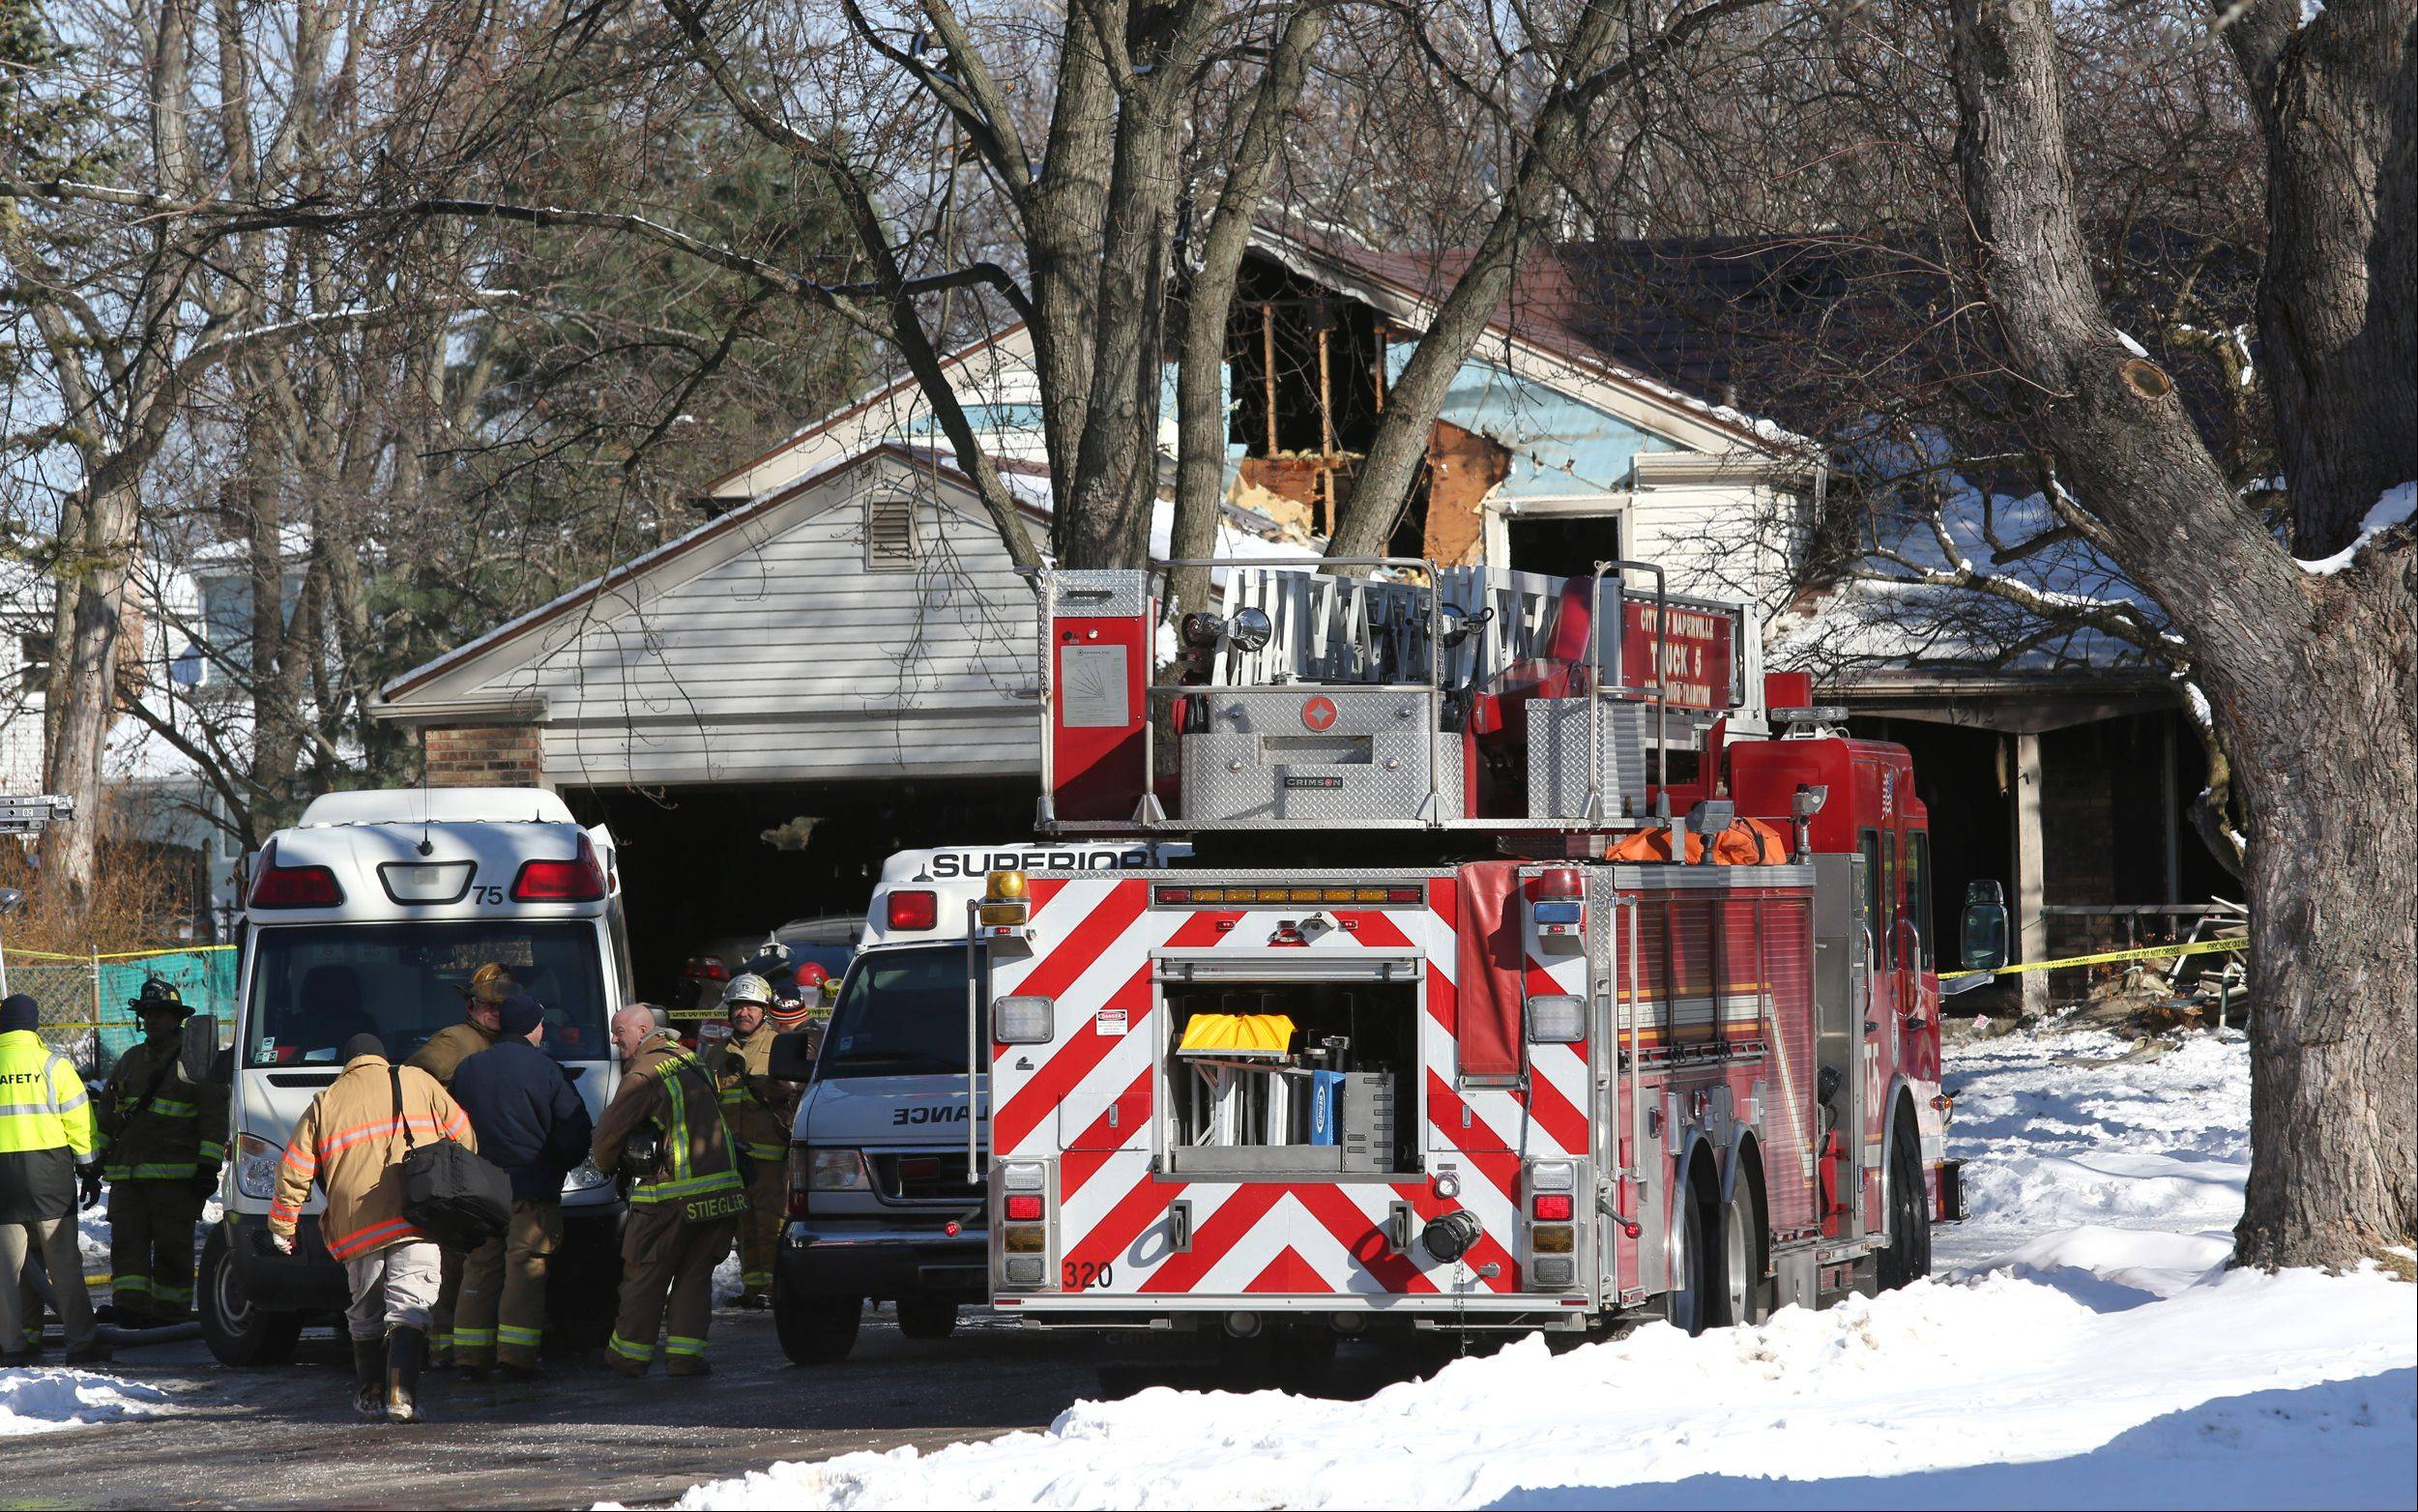 Coroner: Inhaling fire-heated air killed Naperville couple